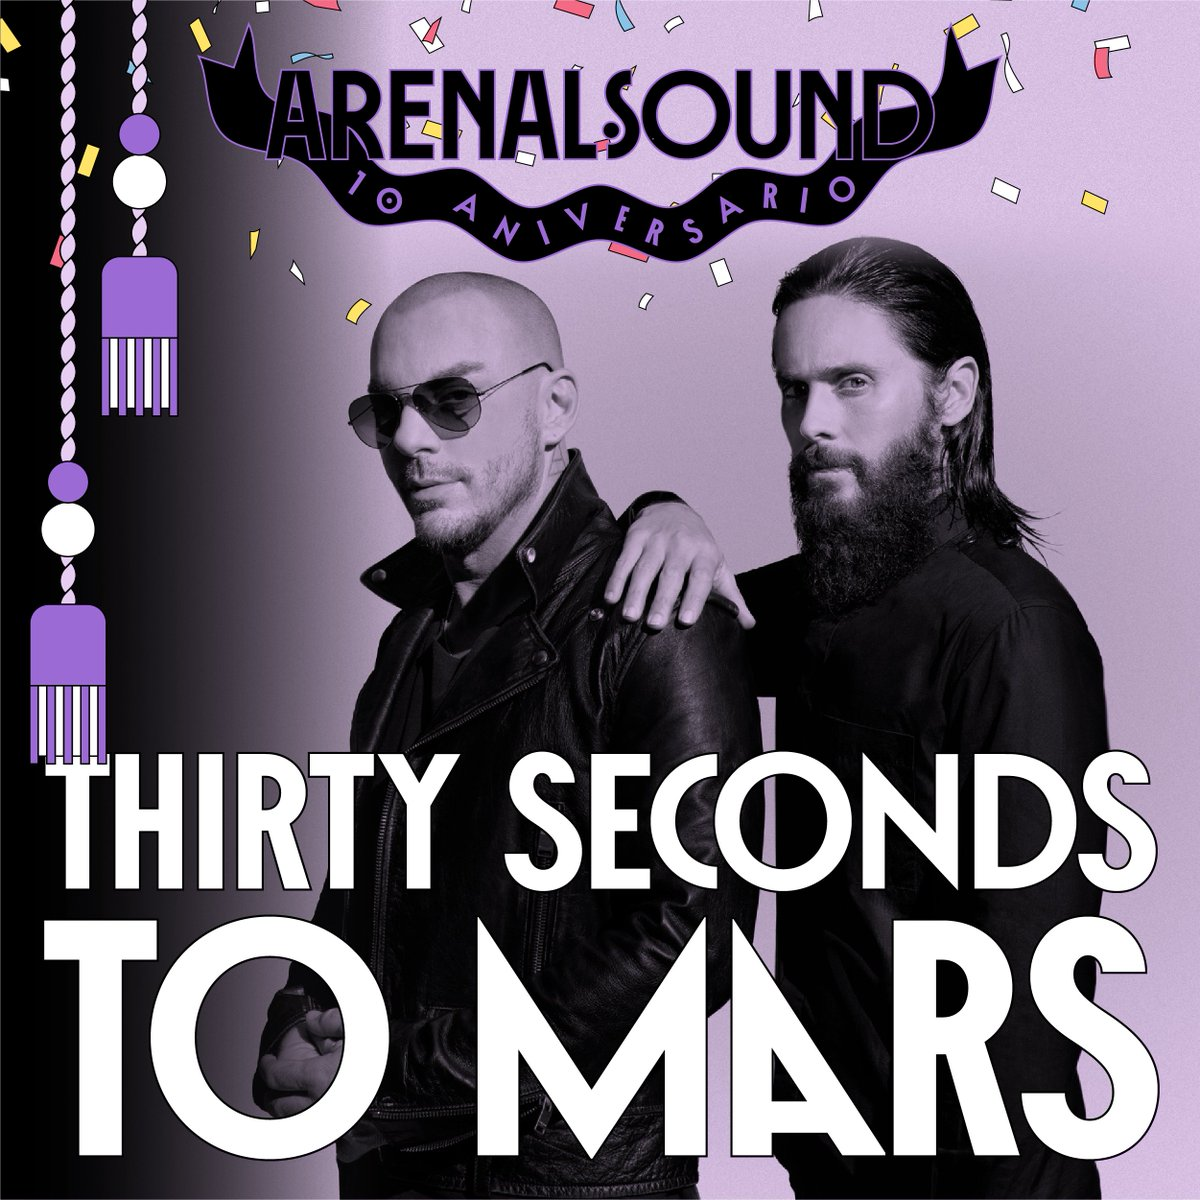 You've been waiting and it's finally here! SPAIN - MARS is coming! Upgrades and VIP/Ticket bundles are available now at http://thirtysecondstomars.com/tour